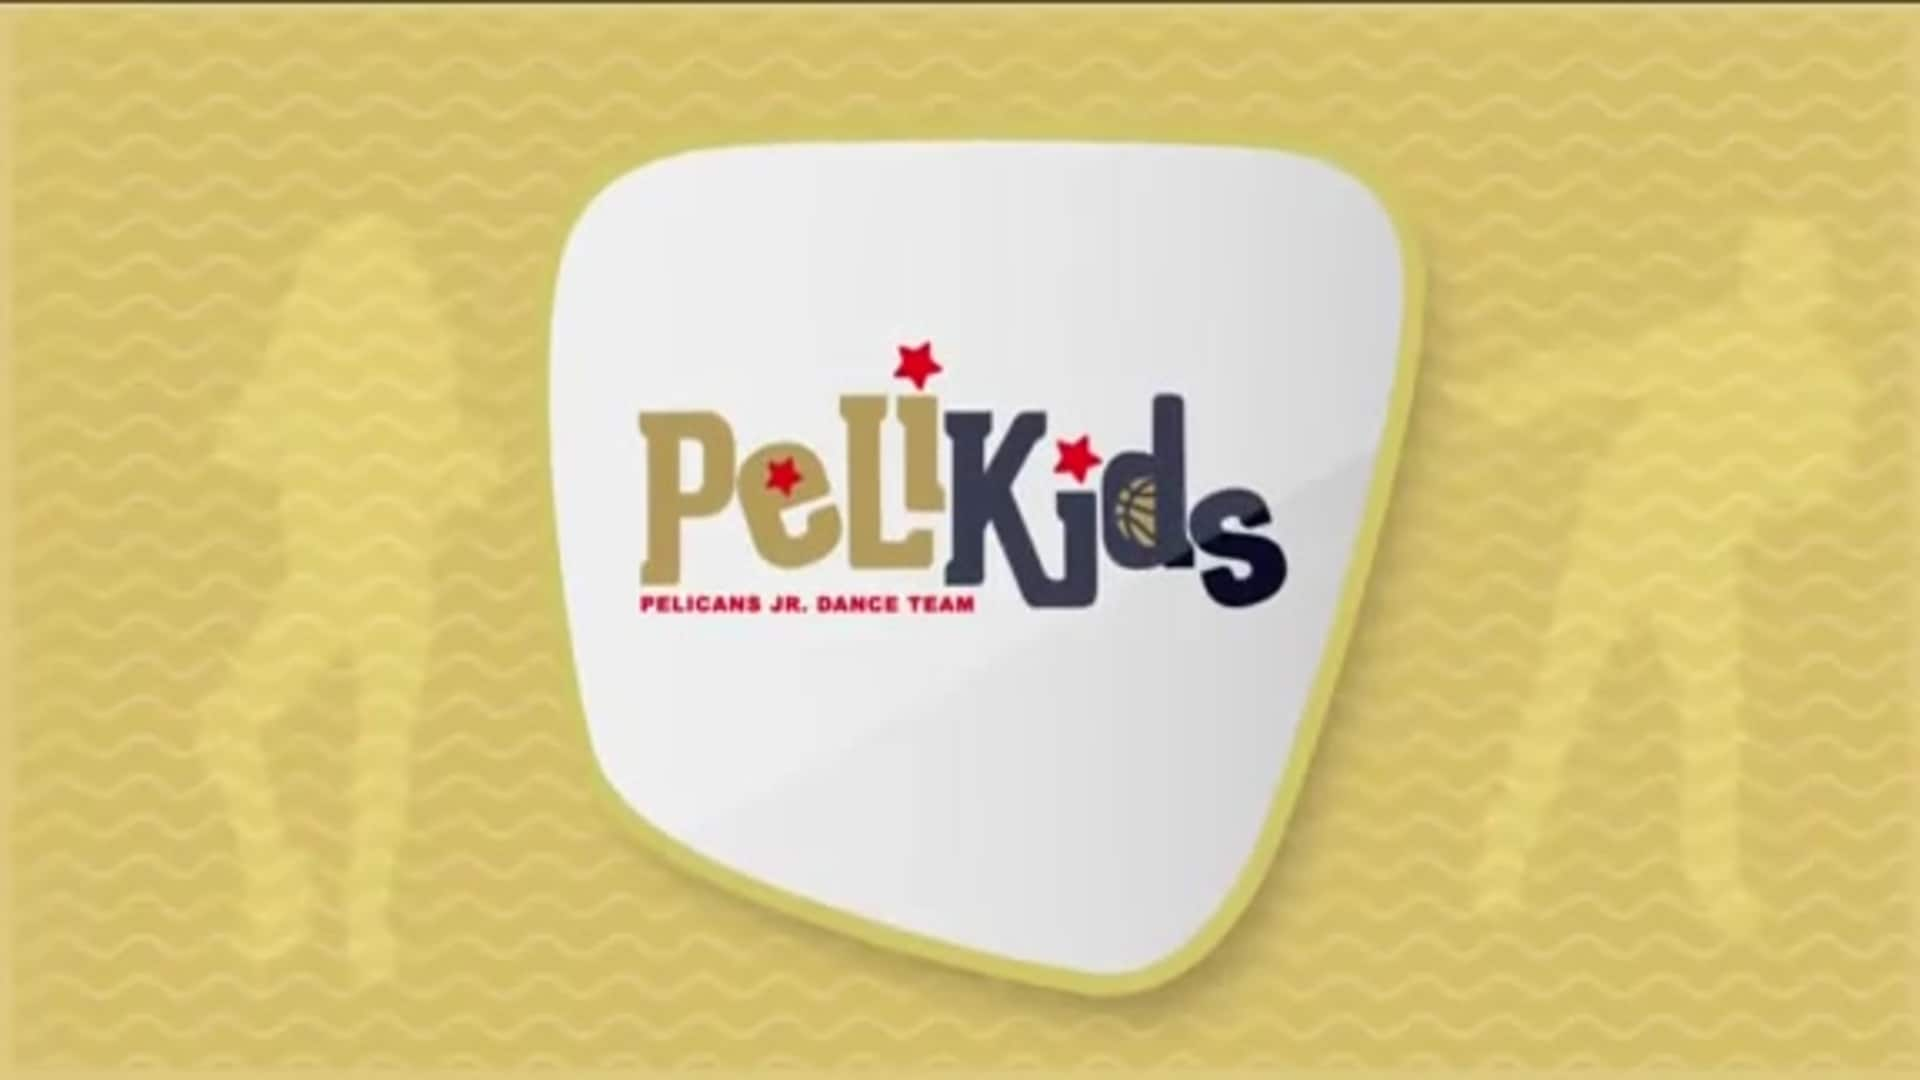 Entertainment: PeliKids Dance Team 2nd quarter performance - December 28 vs. Indiana Pacers